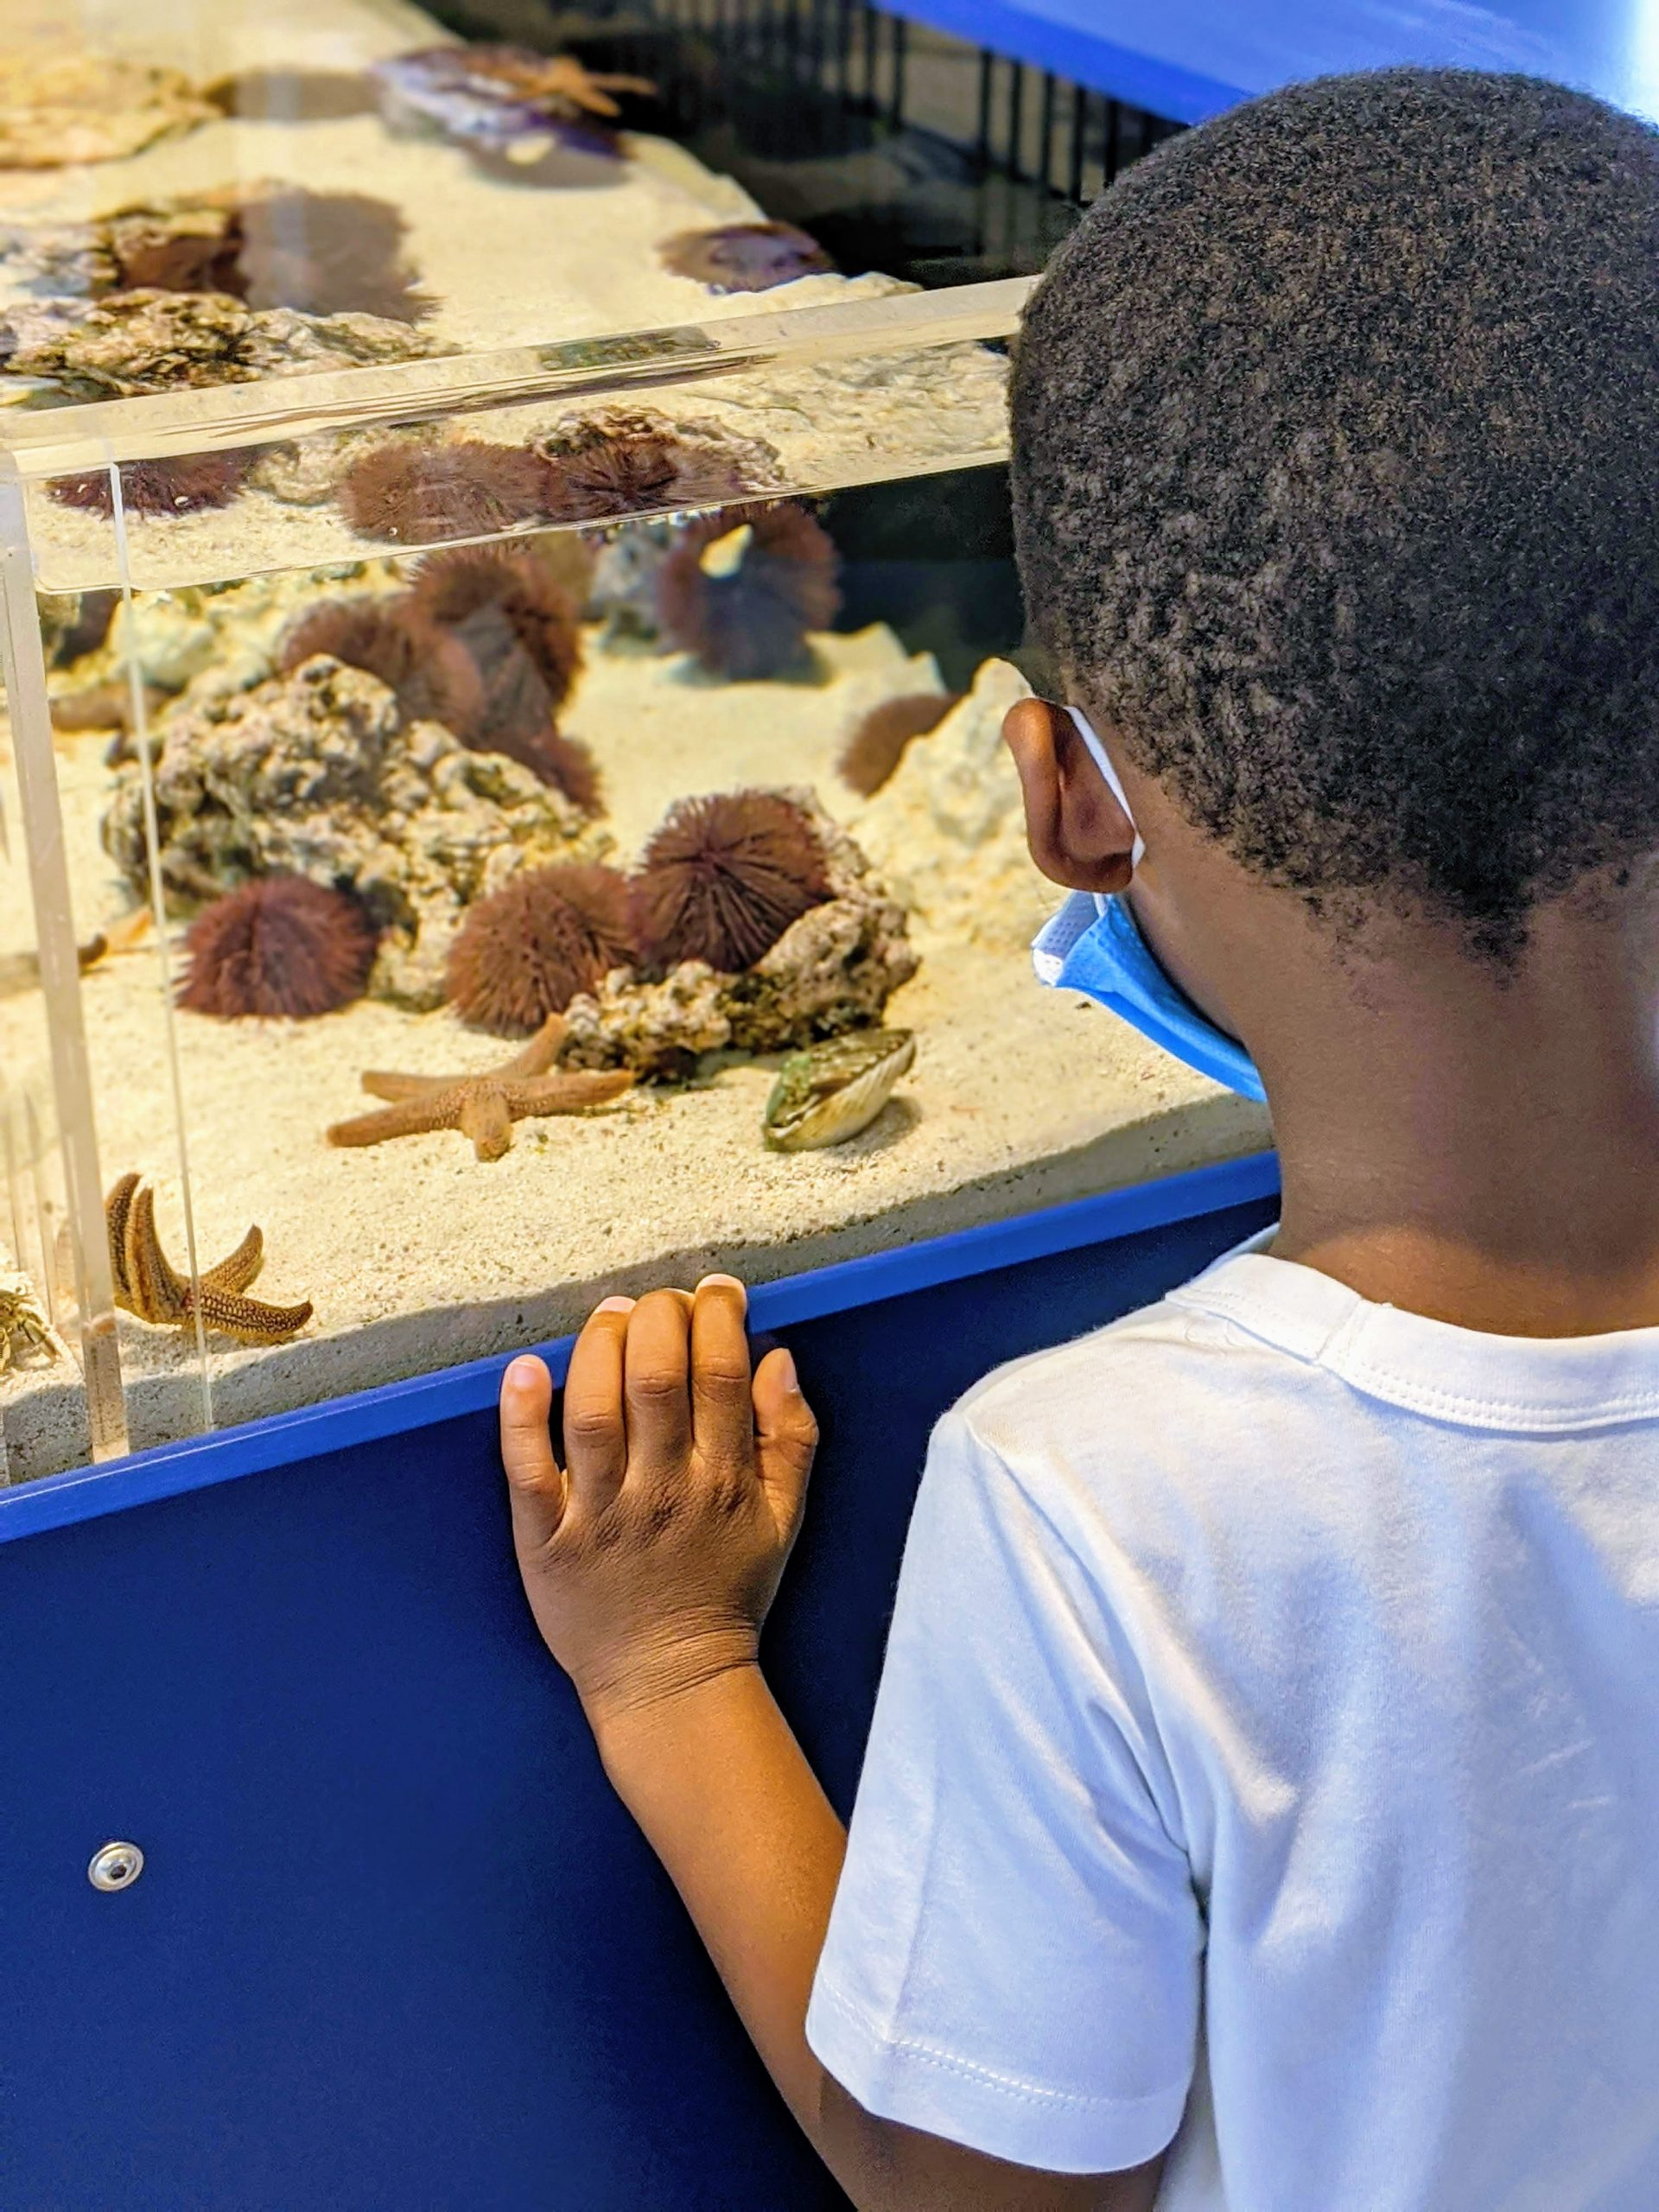 Tampa Bay Watch Discovery Center